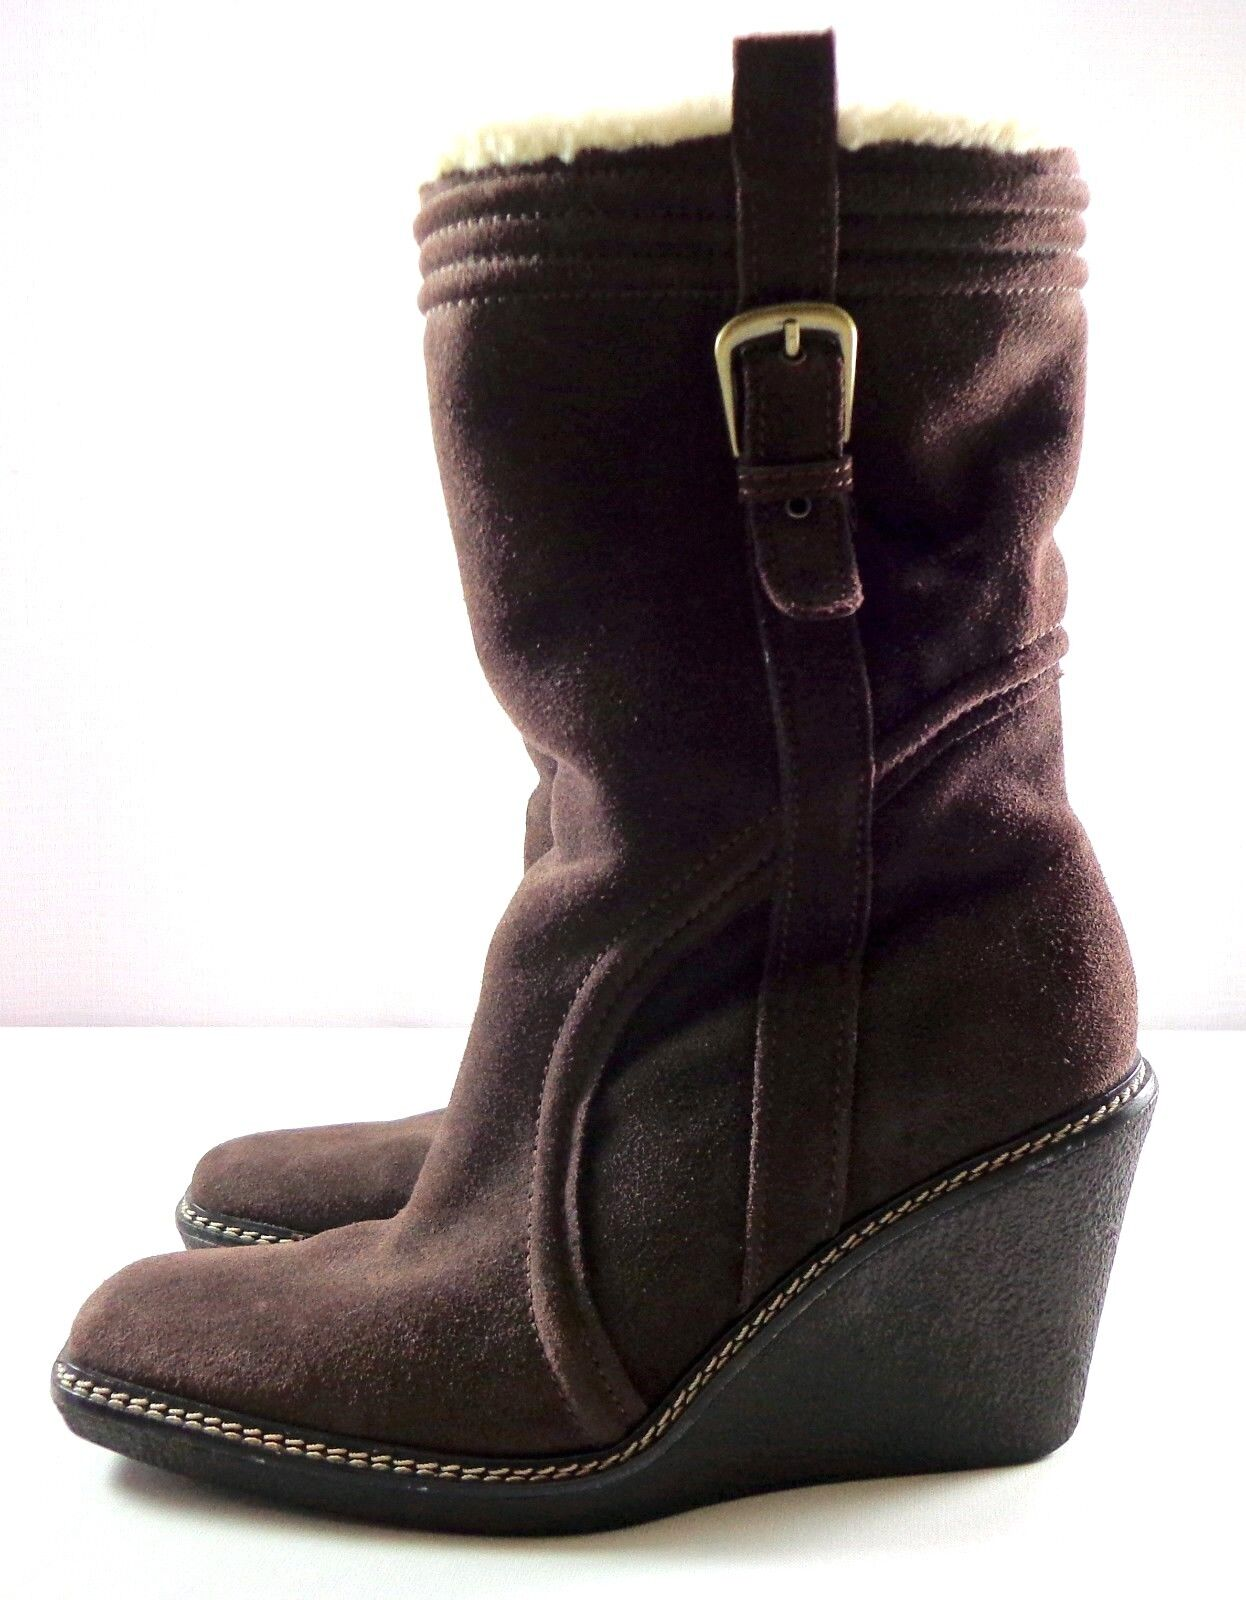 Cole Haan Boots Womens Mid-Calf Wedge Brown Suede Pull On Size 7.5 B